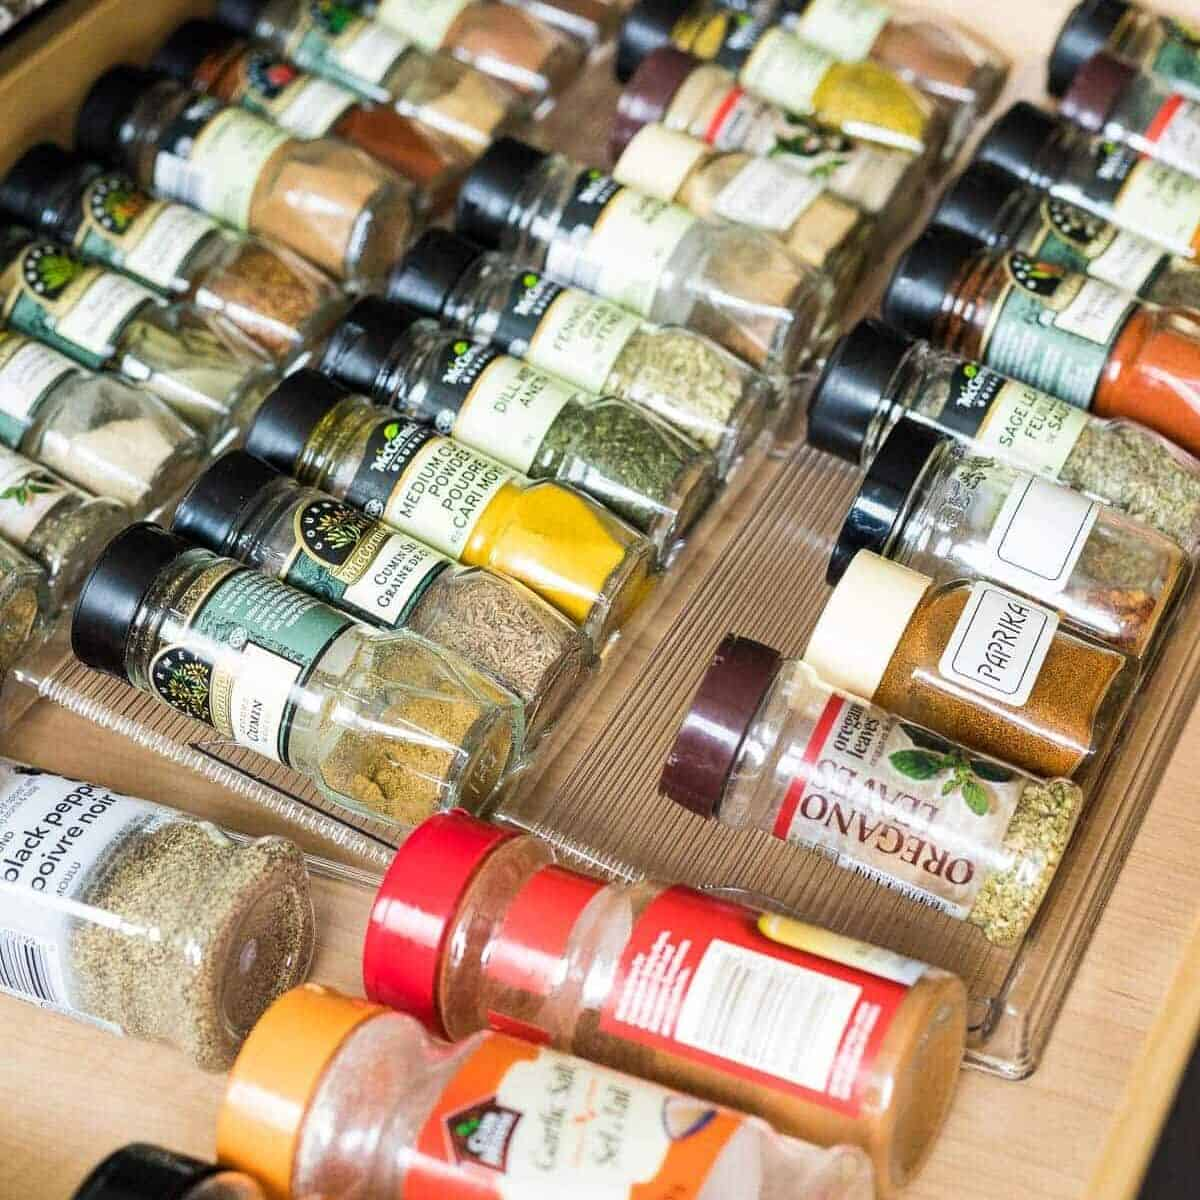 rows of spices in jars